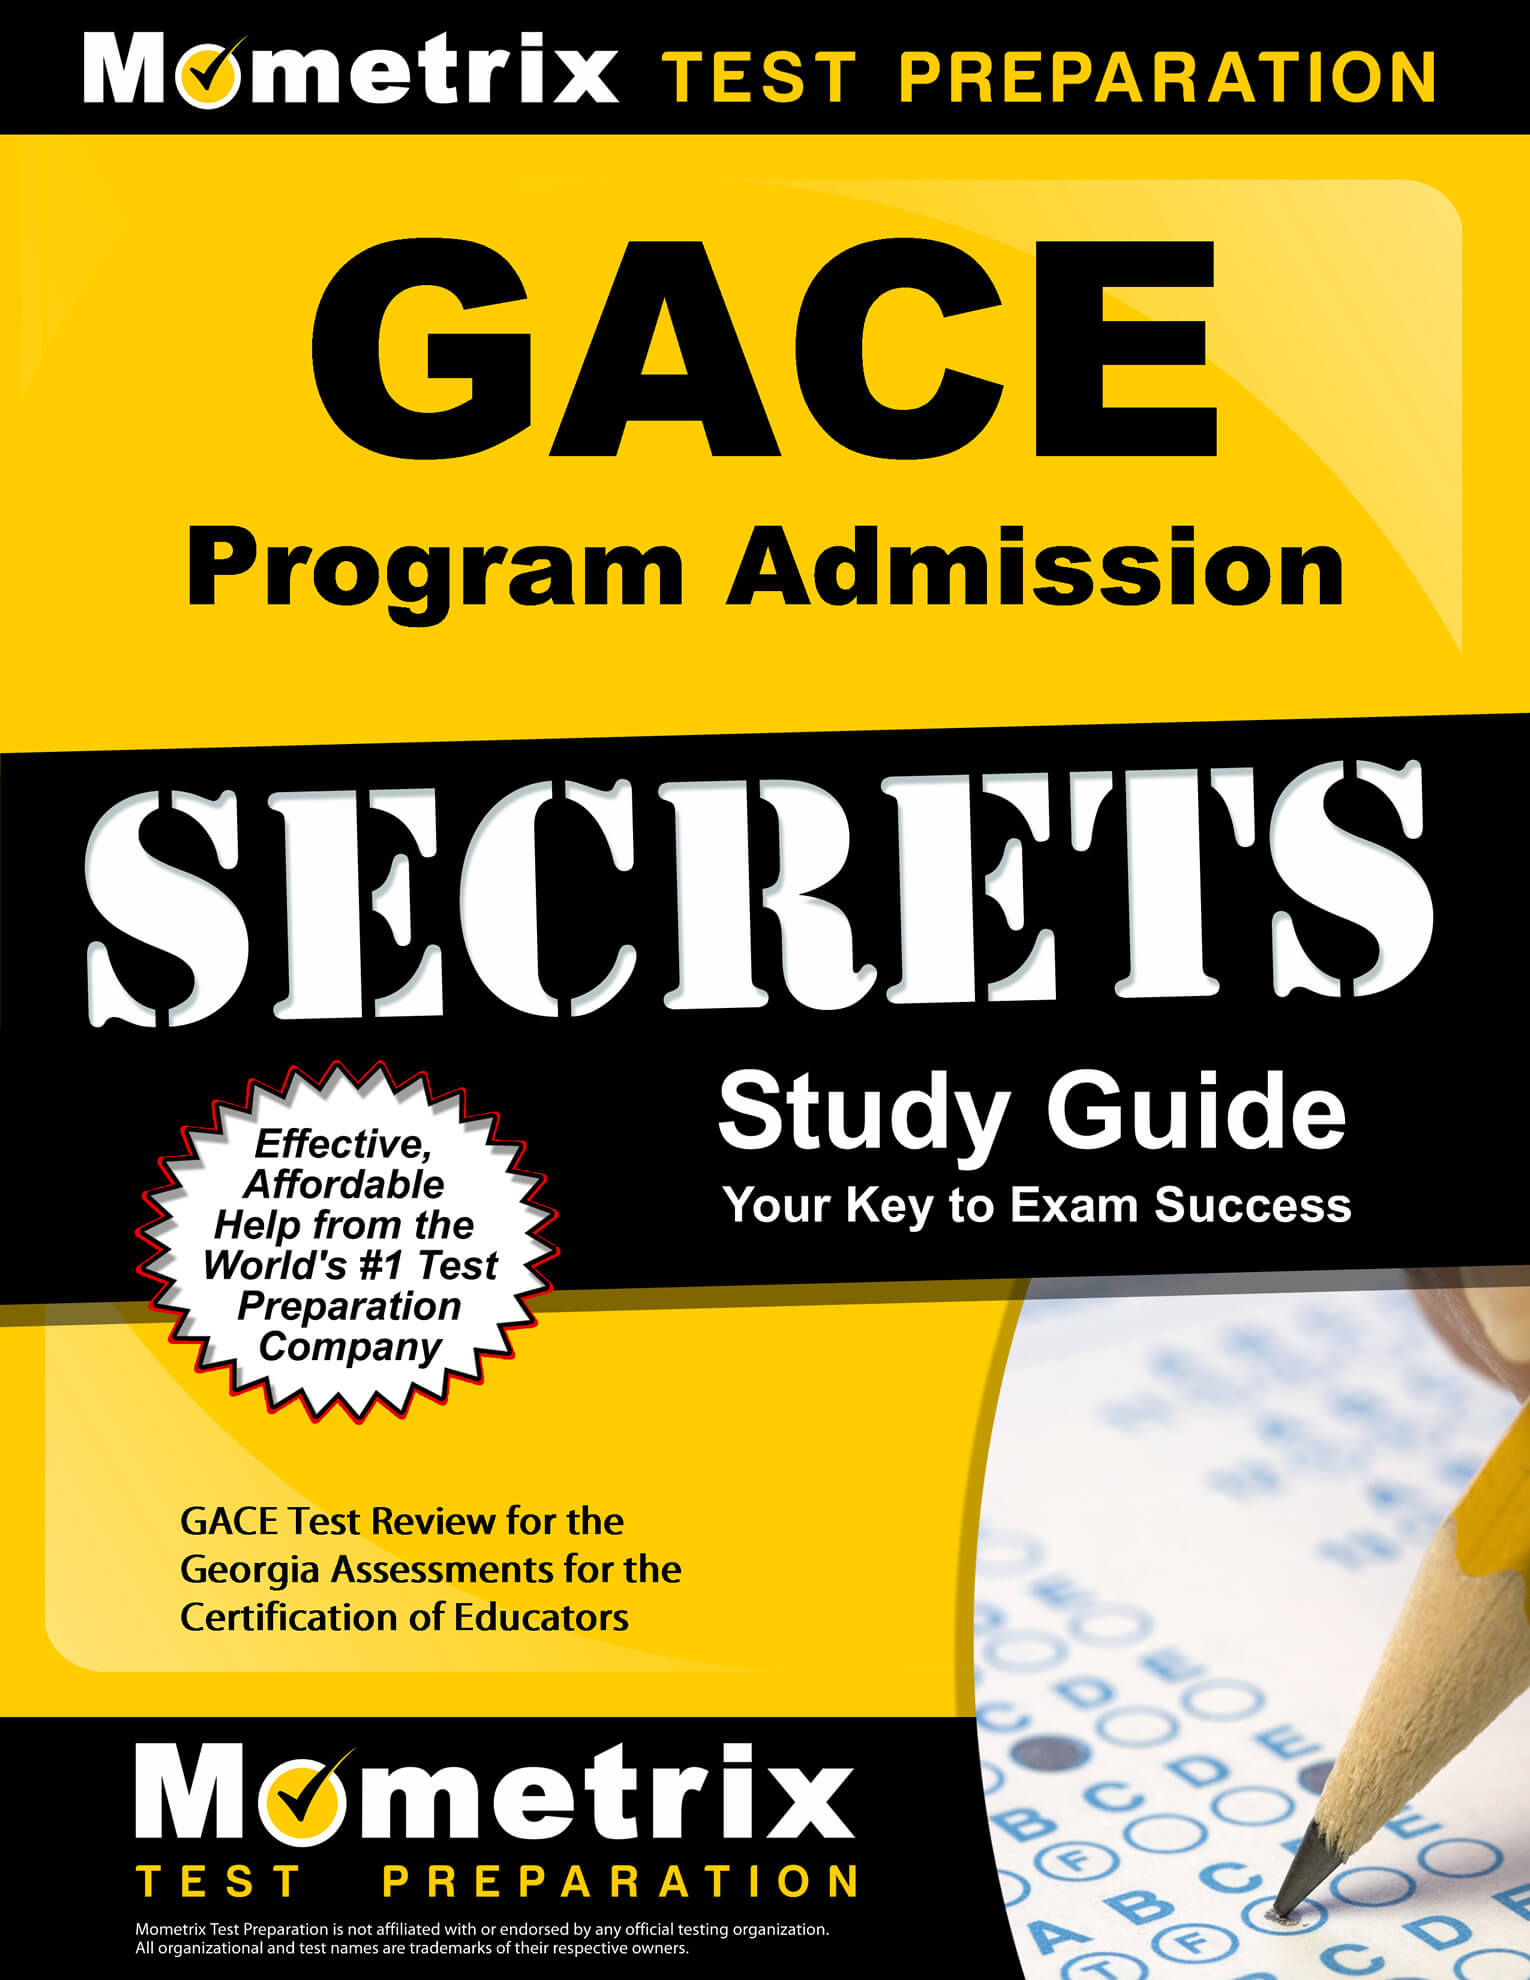 GACE Program Admission Study Guide